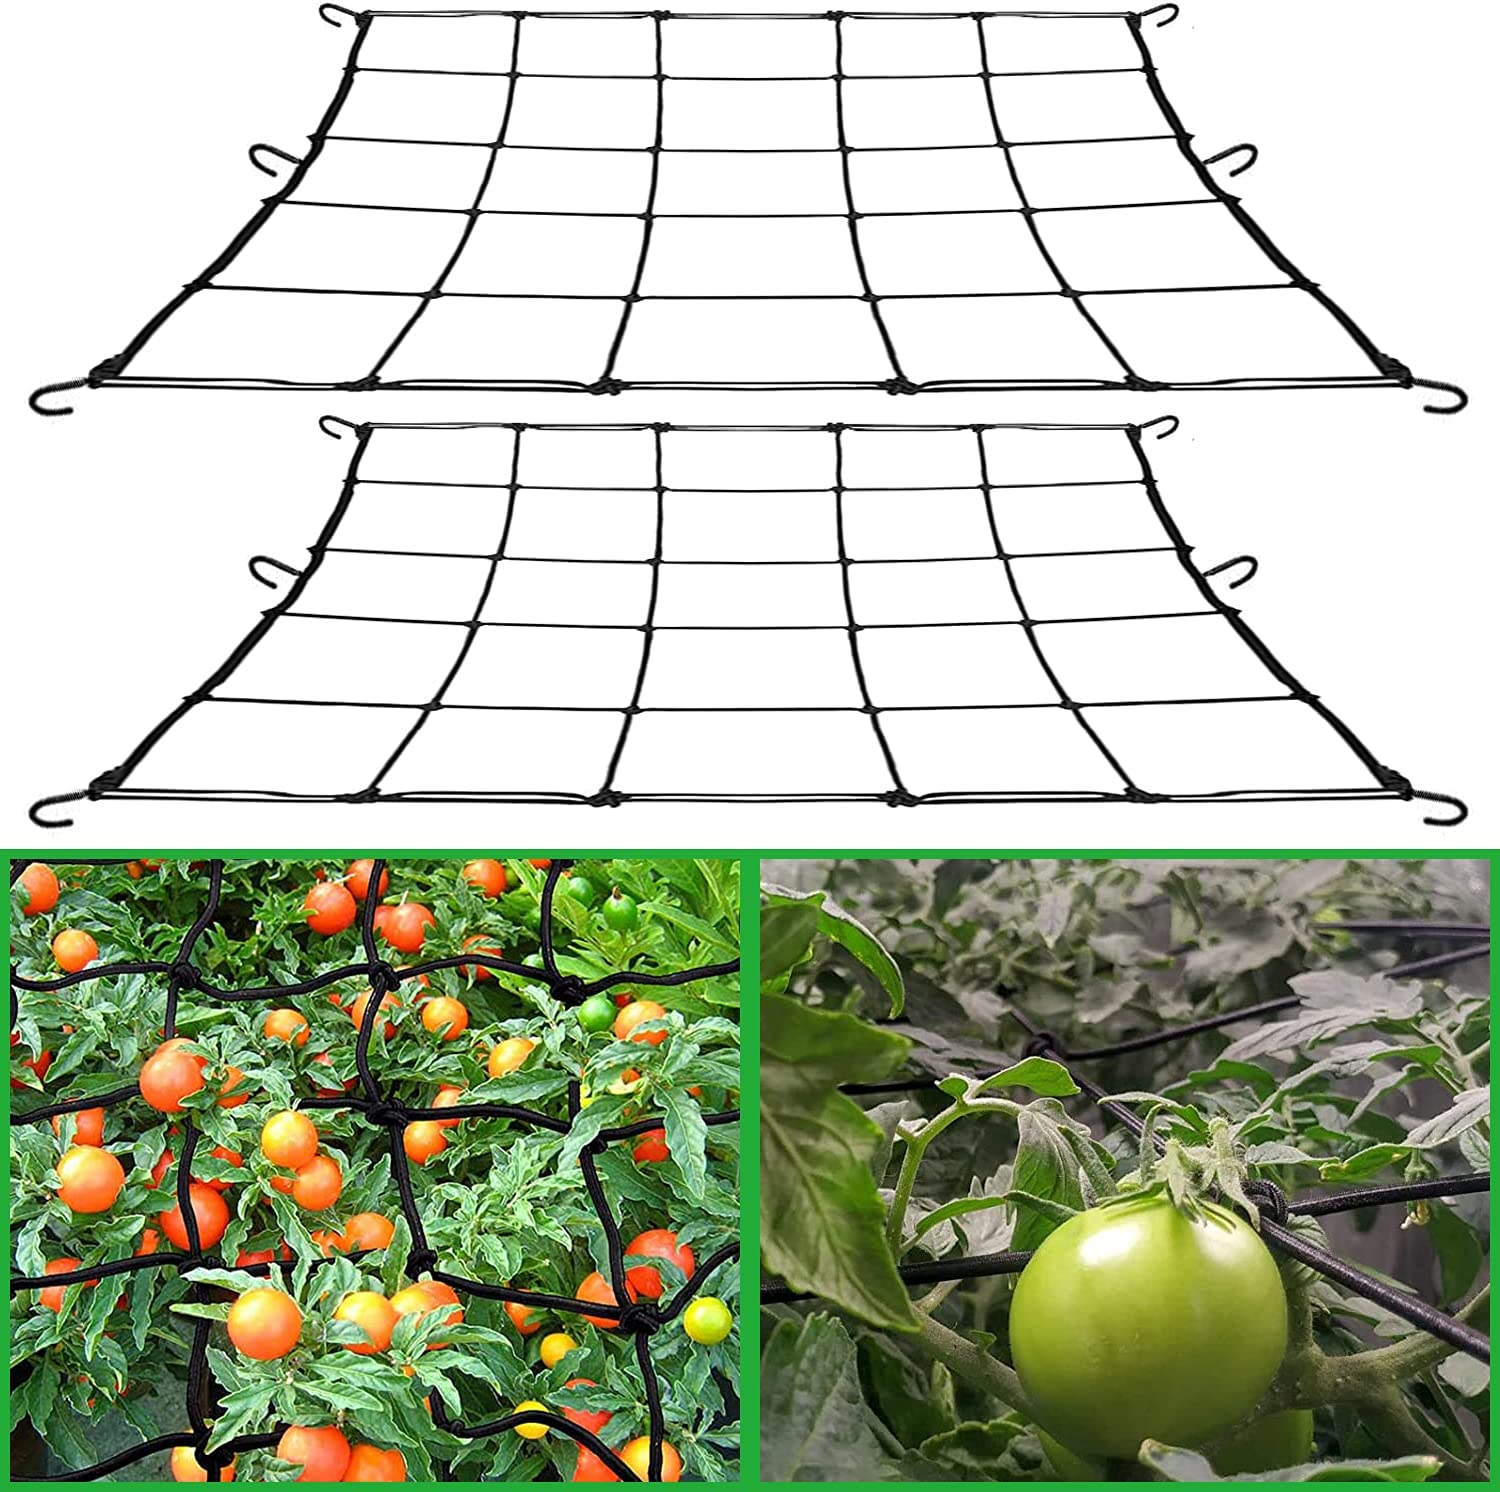 Flexible Elastic Trellis Netting for Grow Tents 2Pcs, 2x2ft Garden Trellis Netting for Fruits and Flowers, with 12 Steel Hooks